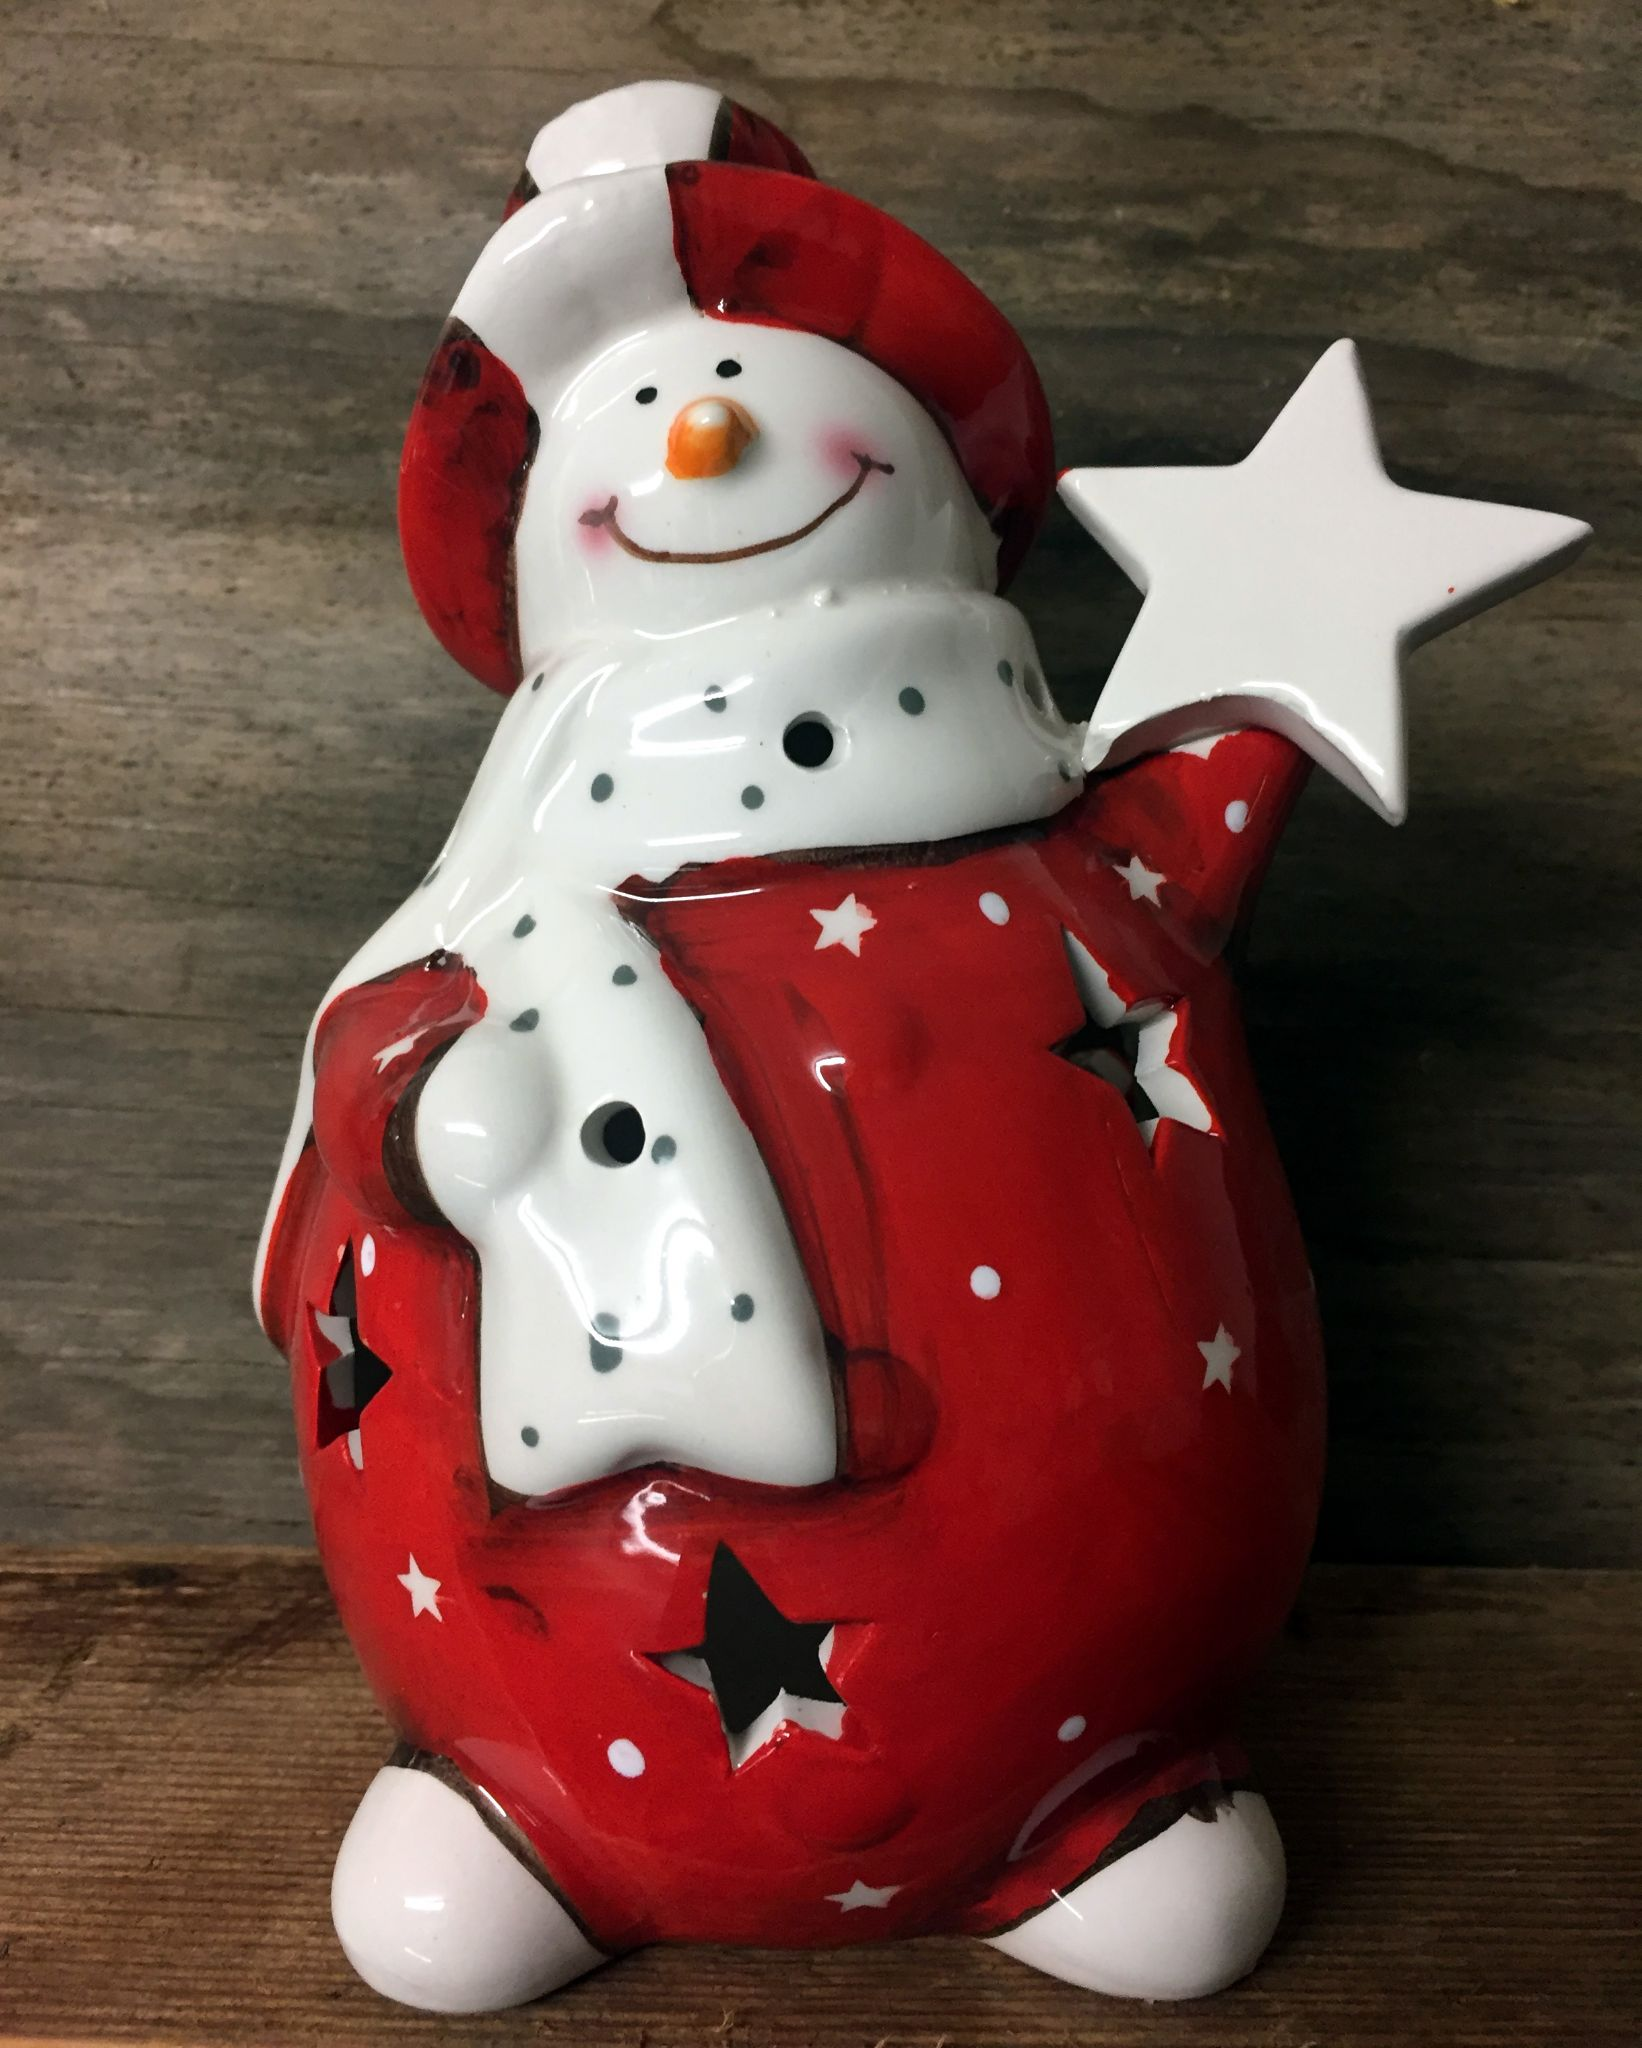 Large Fat Snowman Ceramic Tea Light Holder With Star